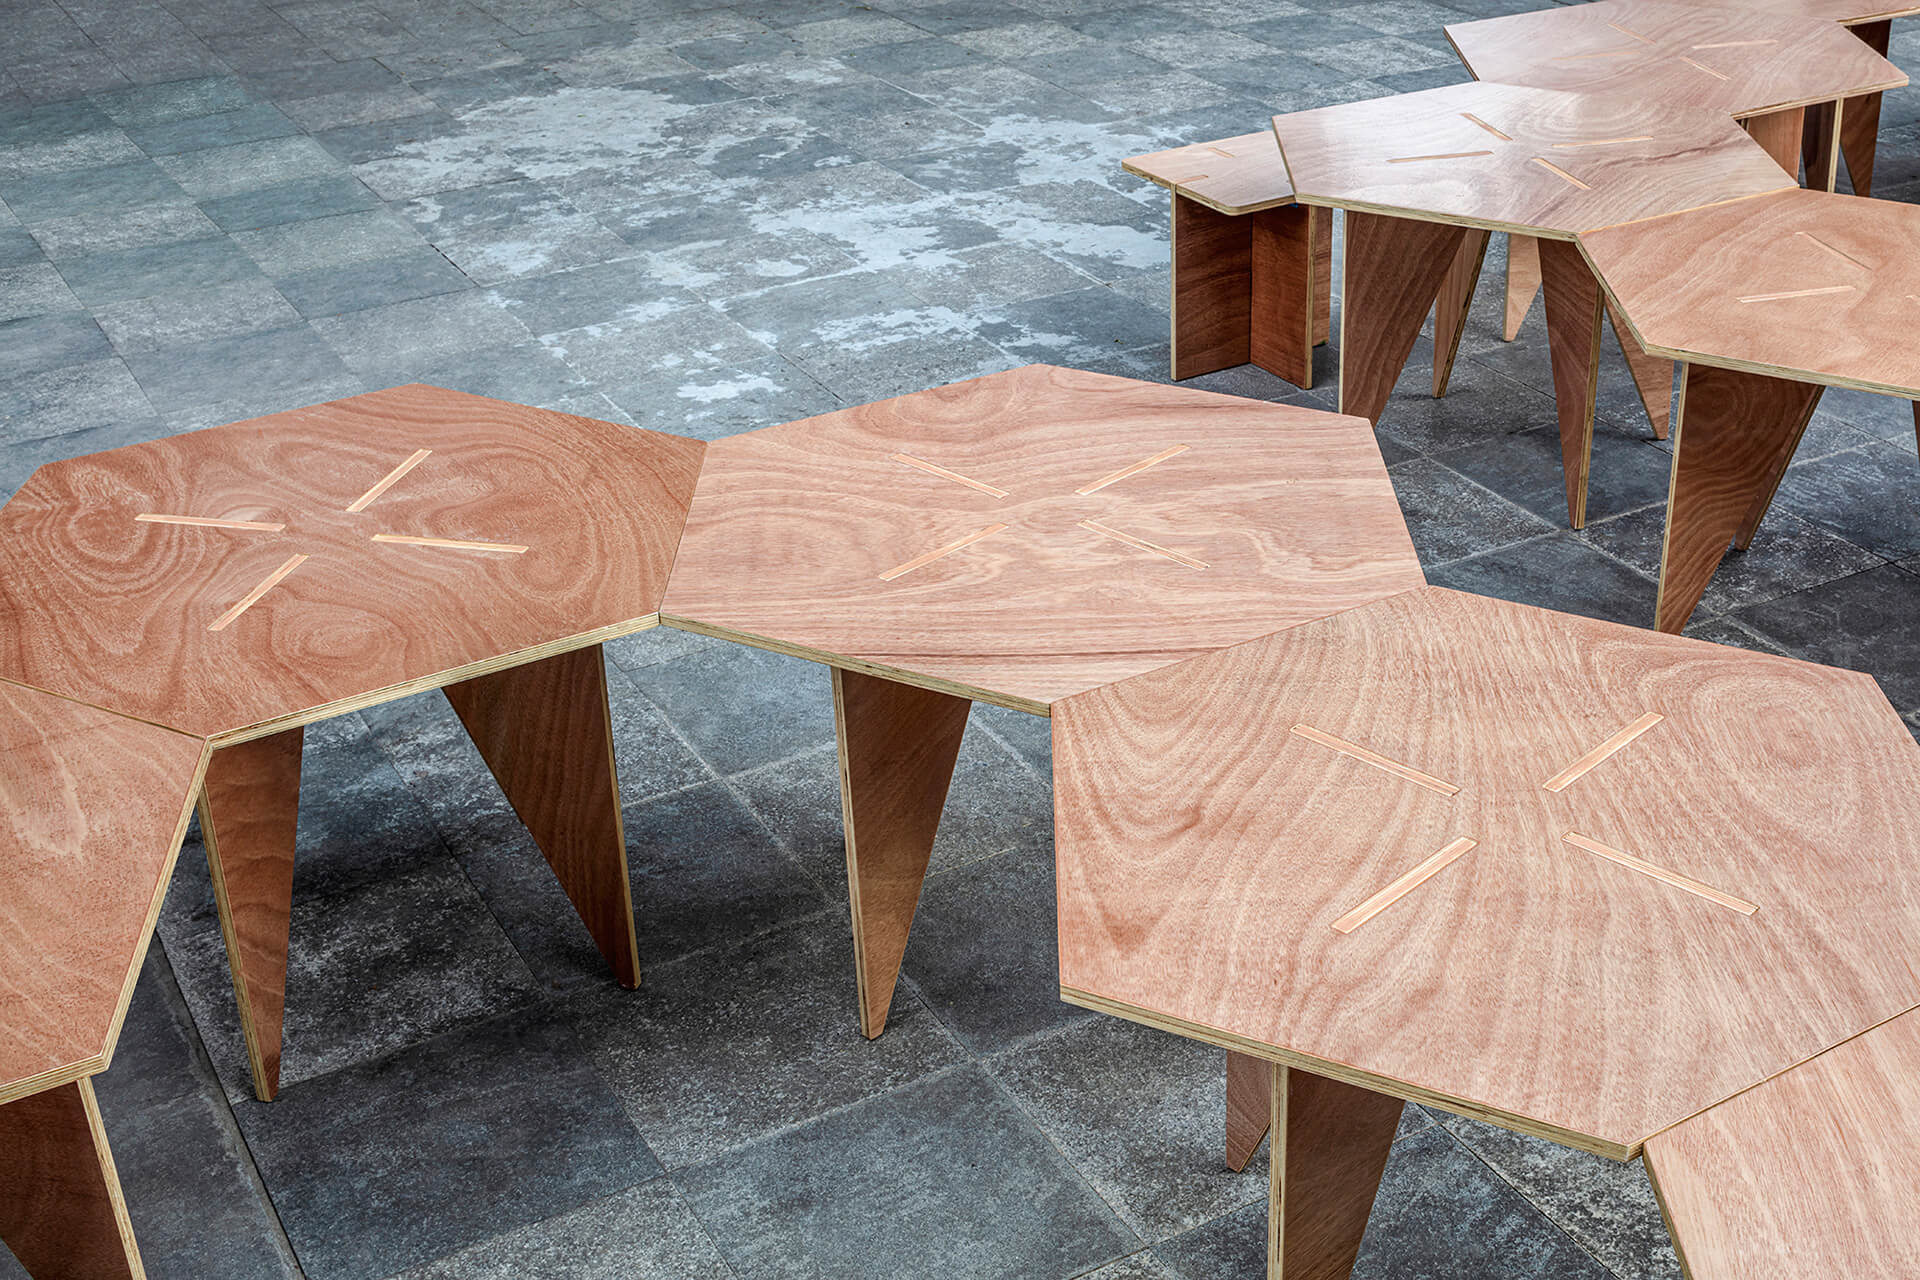 The prefabricated pieces are joined together through cut grooves | Pavilion S | Rooi Design and Research | STIRworld